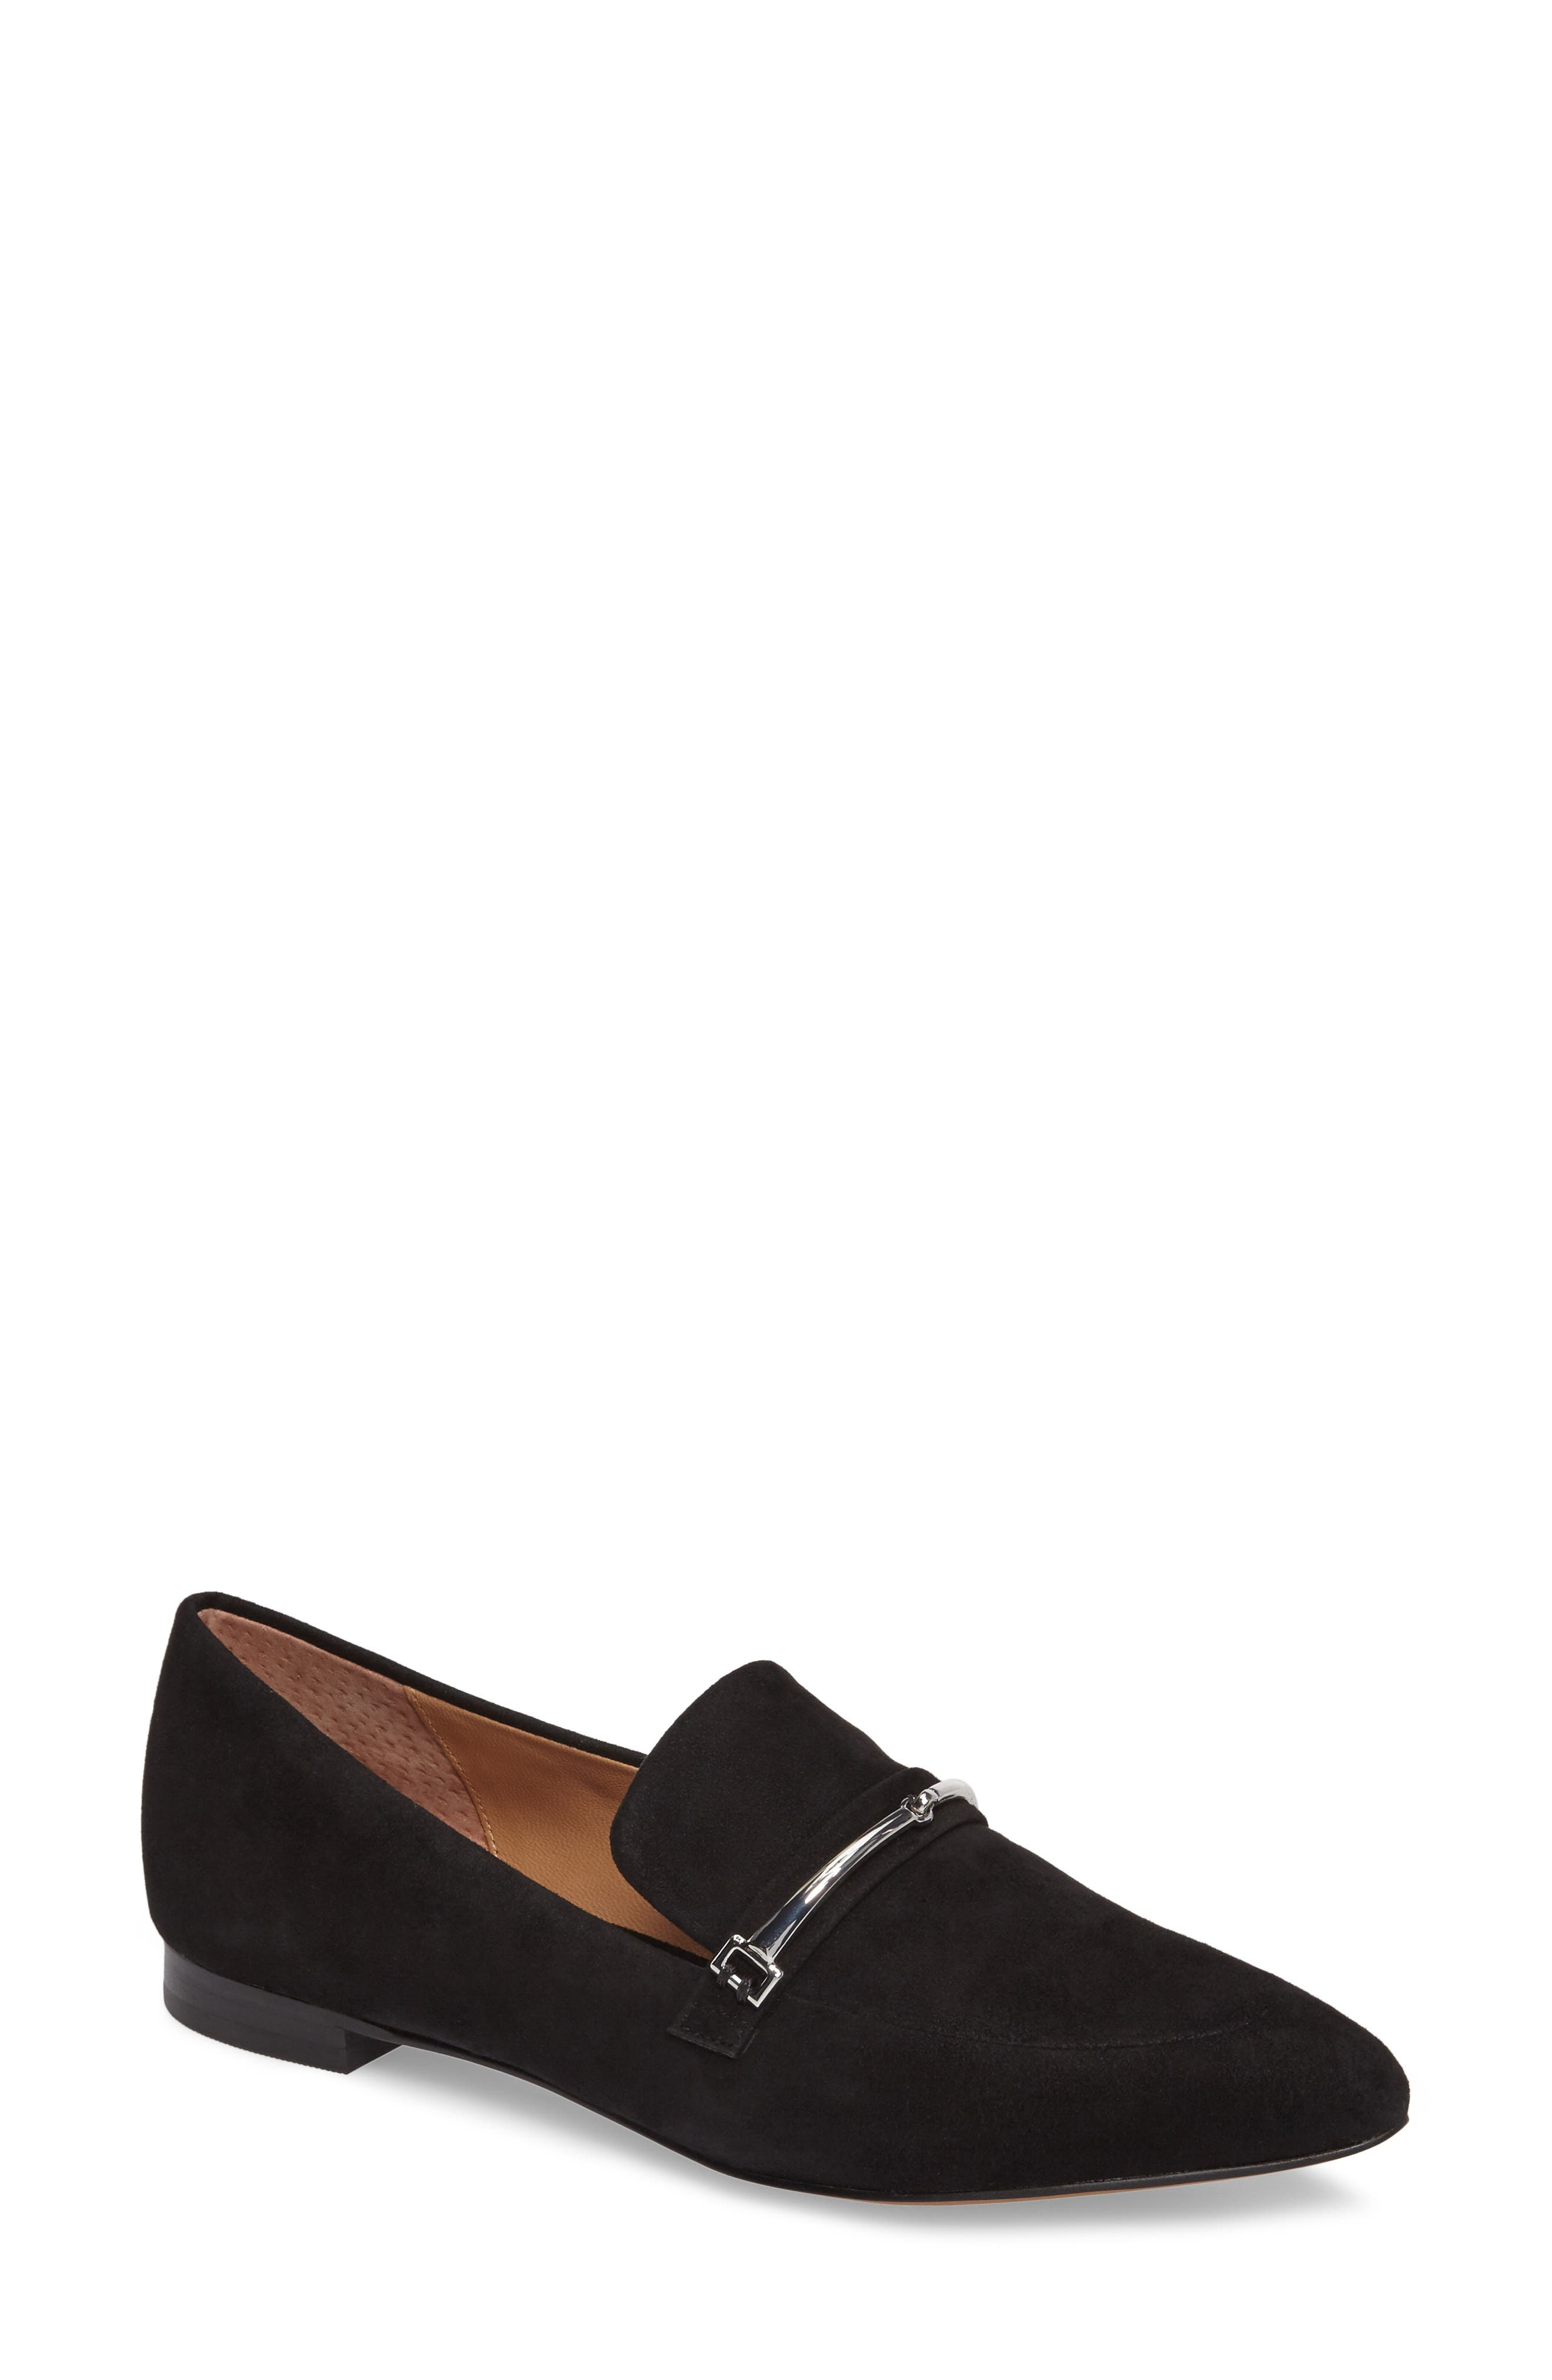 Molly Loafer,                         Main,                         color, Black Suede